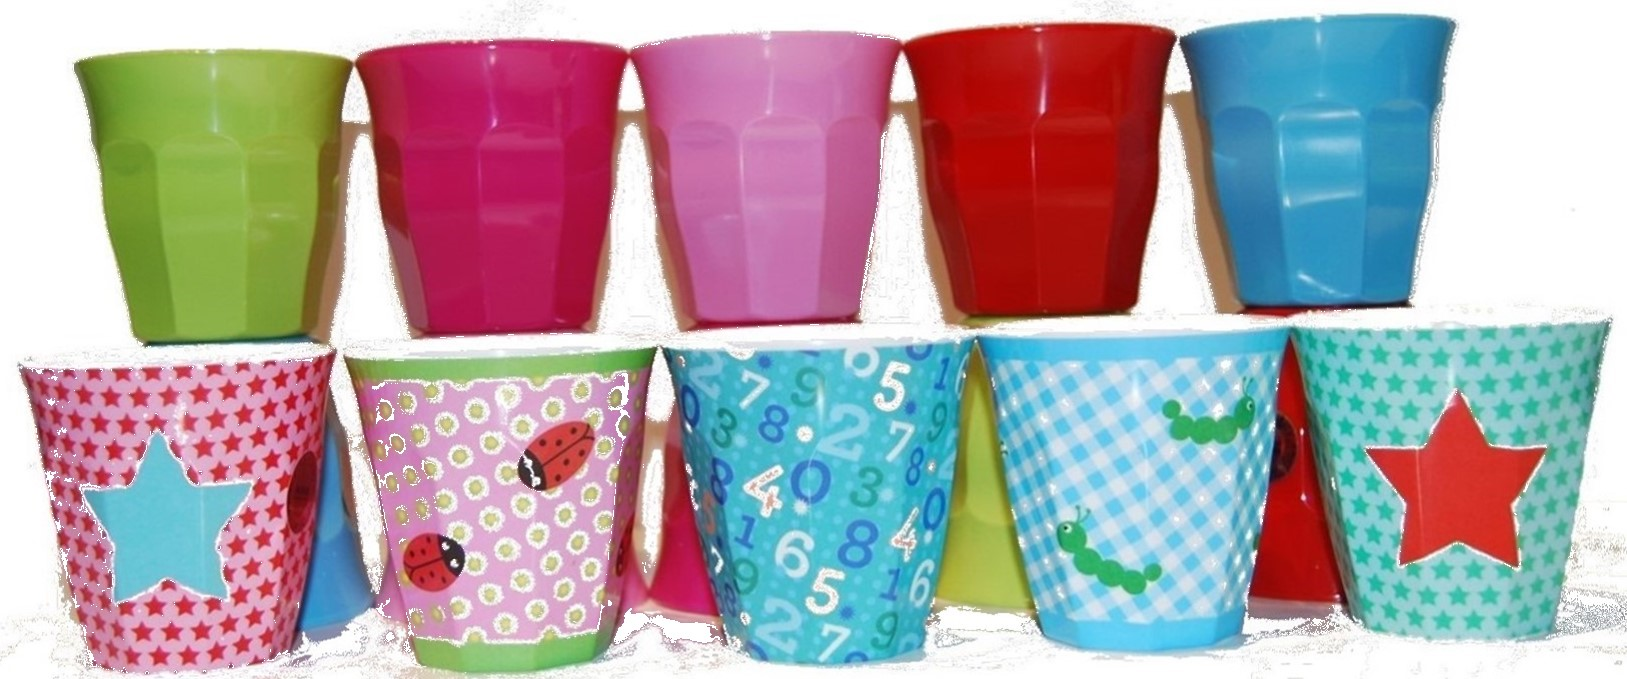 rice dk kids melamine cup patterned plain printed star pink girl theme boy  sc 1 st  Vibrant Home & Fun bright practical kids melamine tableware - Vibrant Home